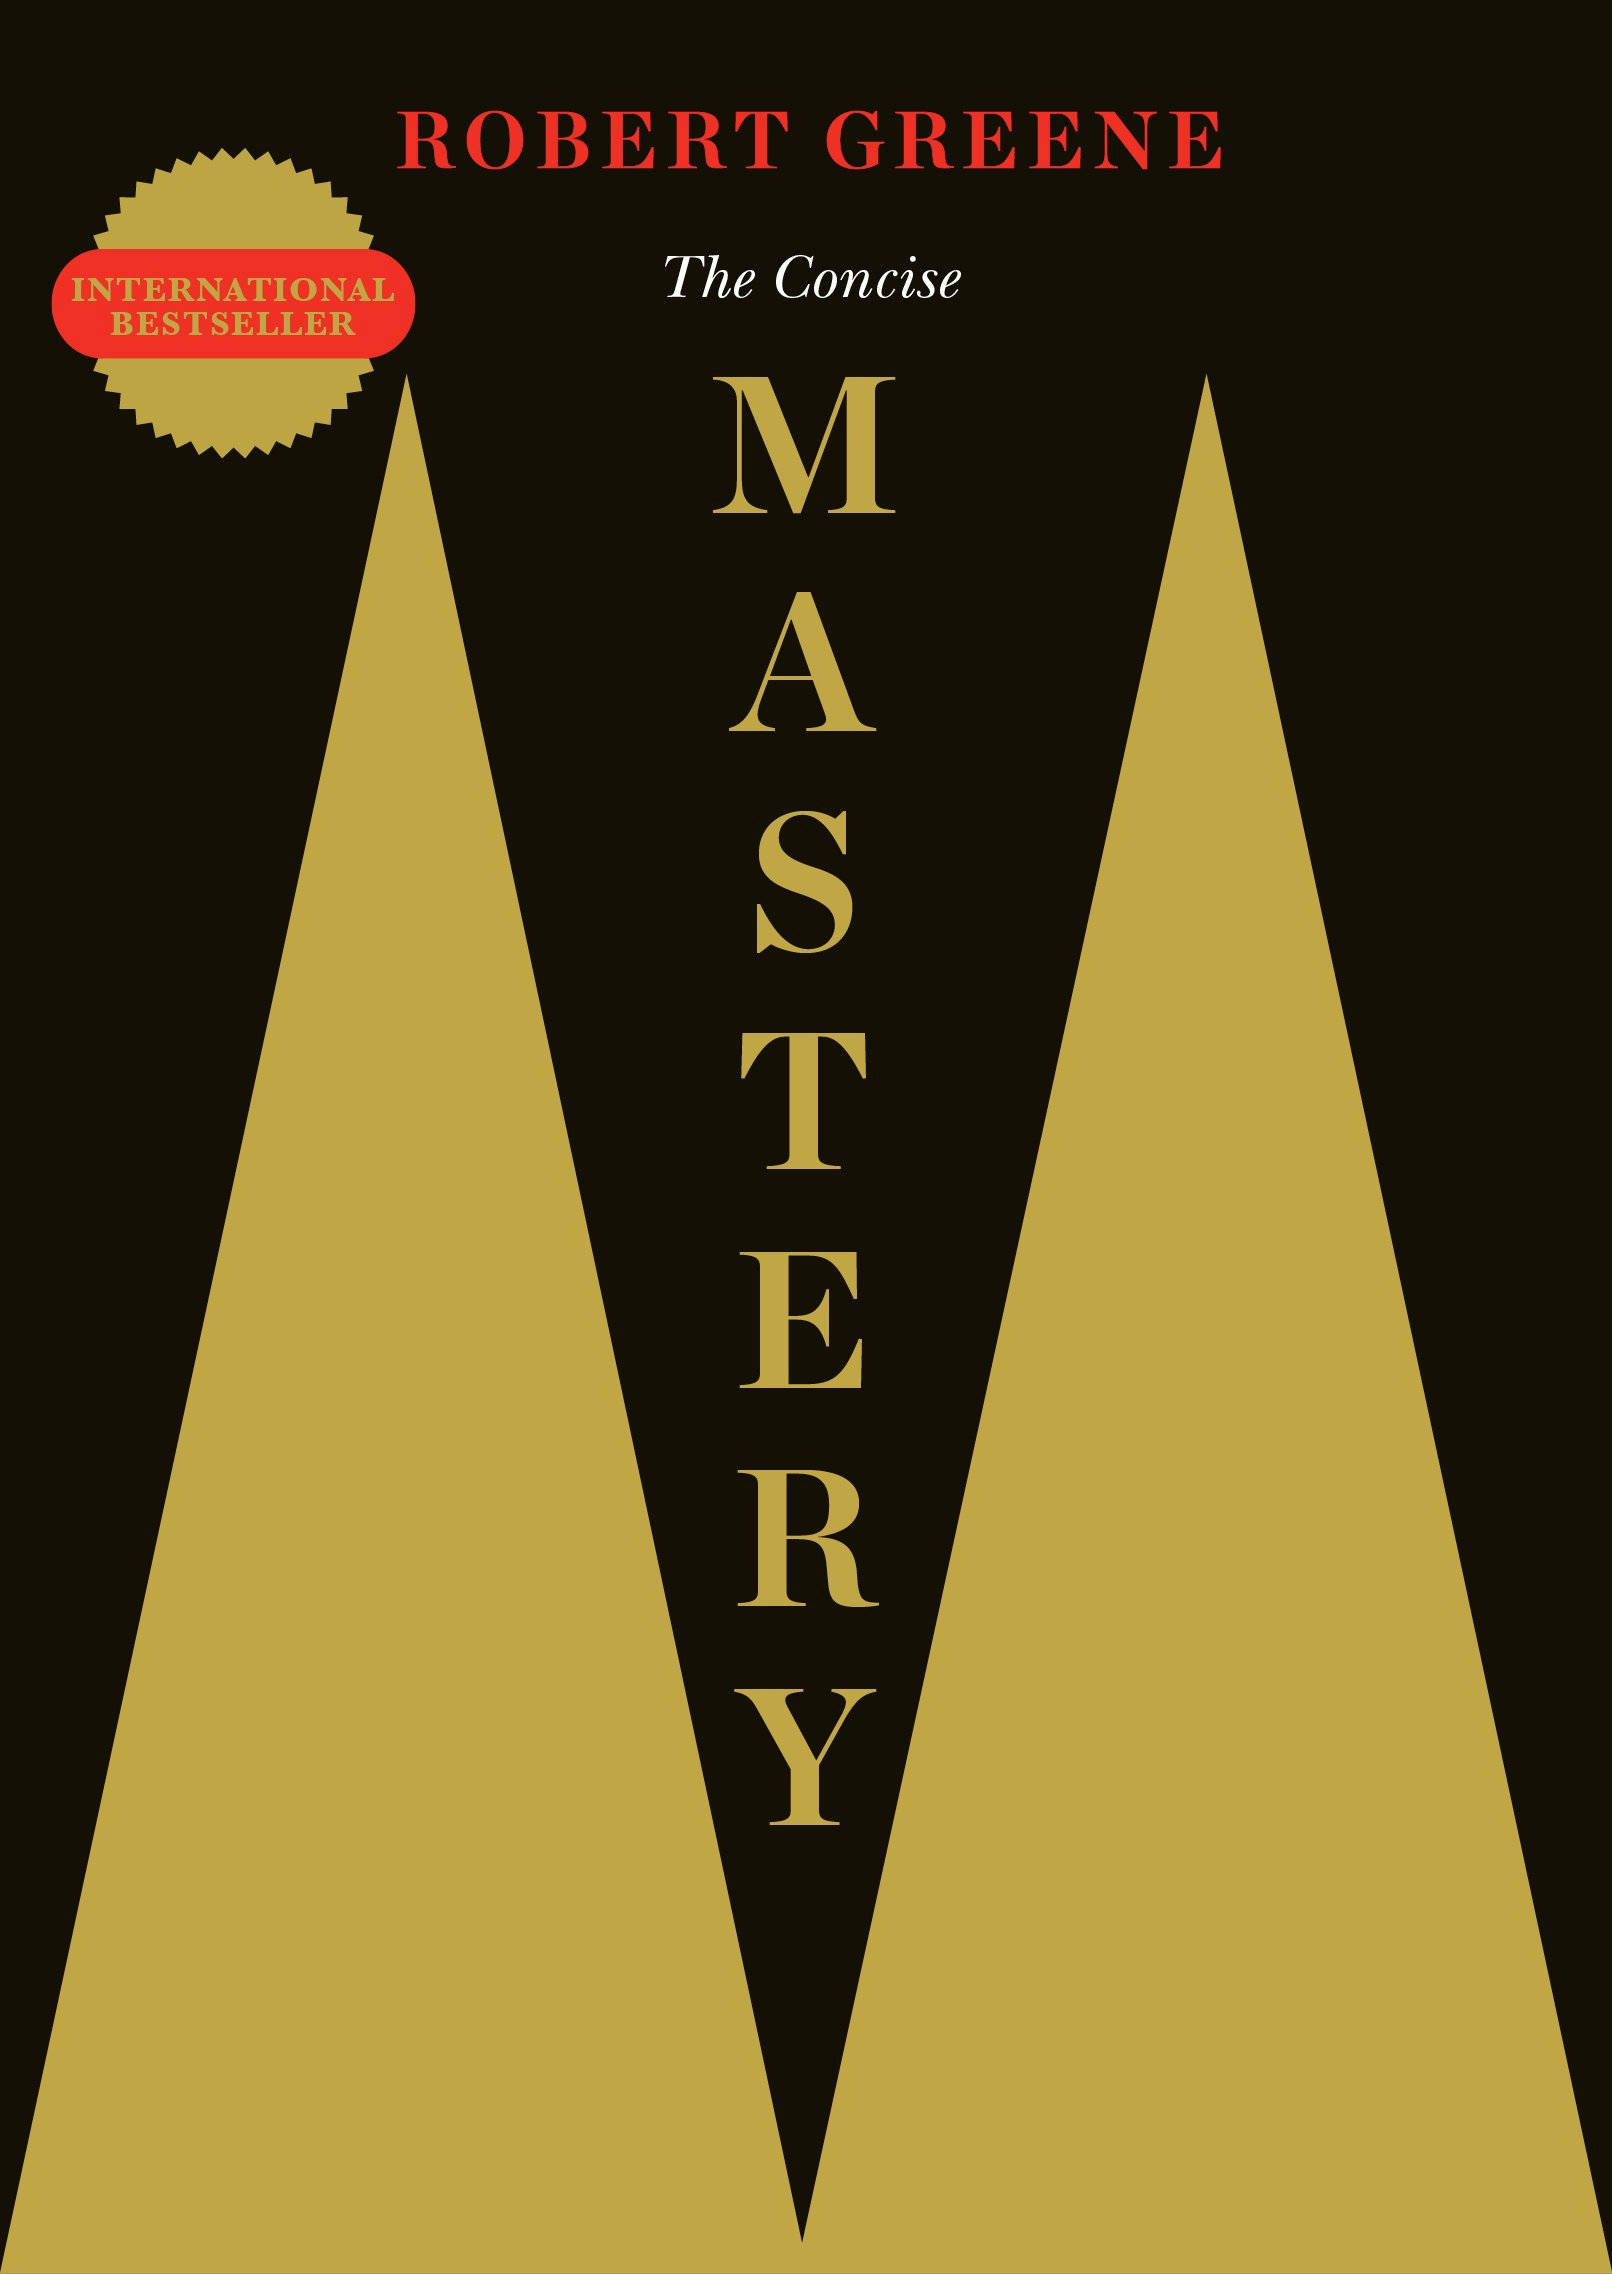 The Concise Mastery (The Robert Greene Collection) Paperback